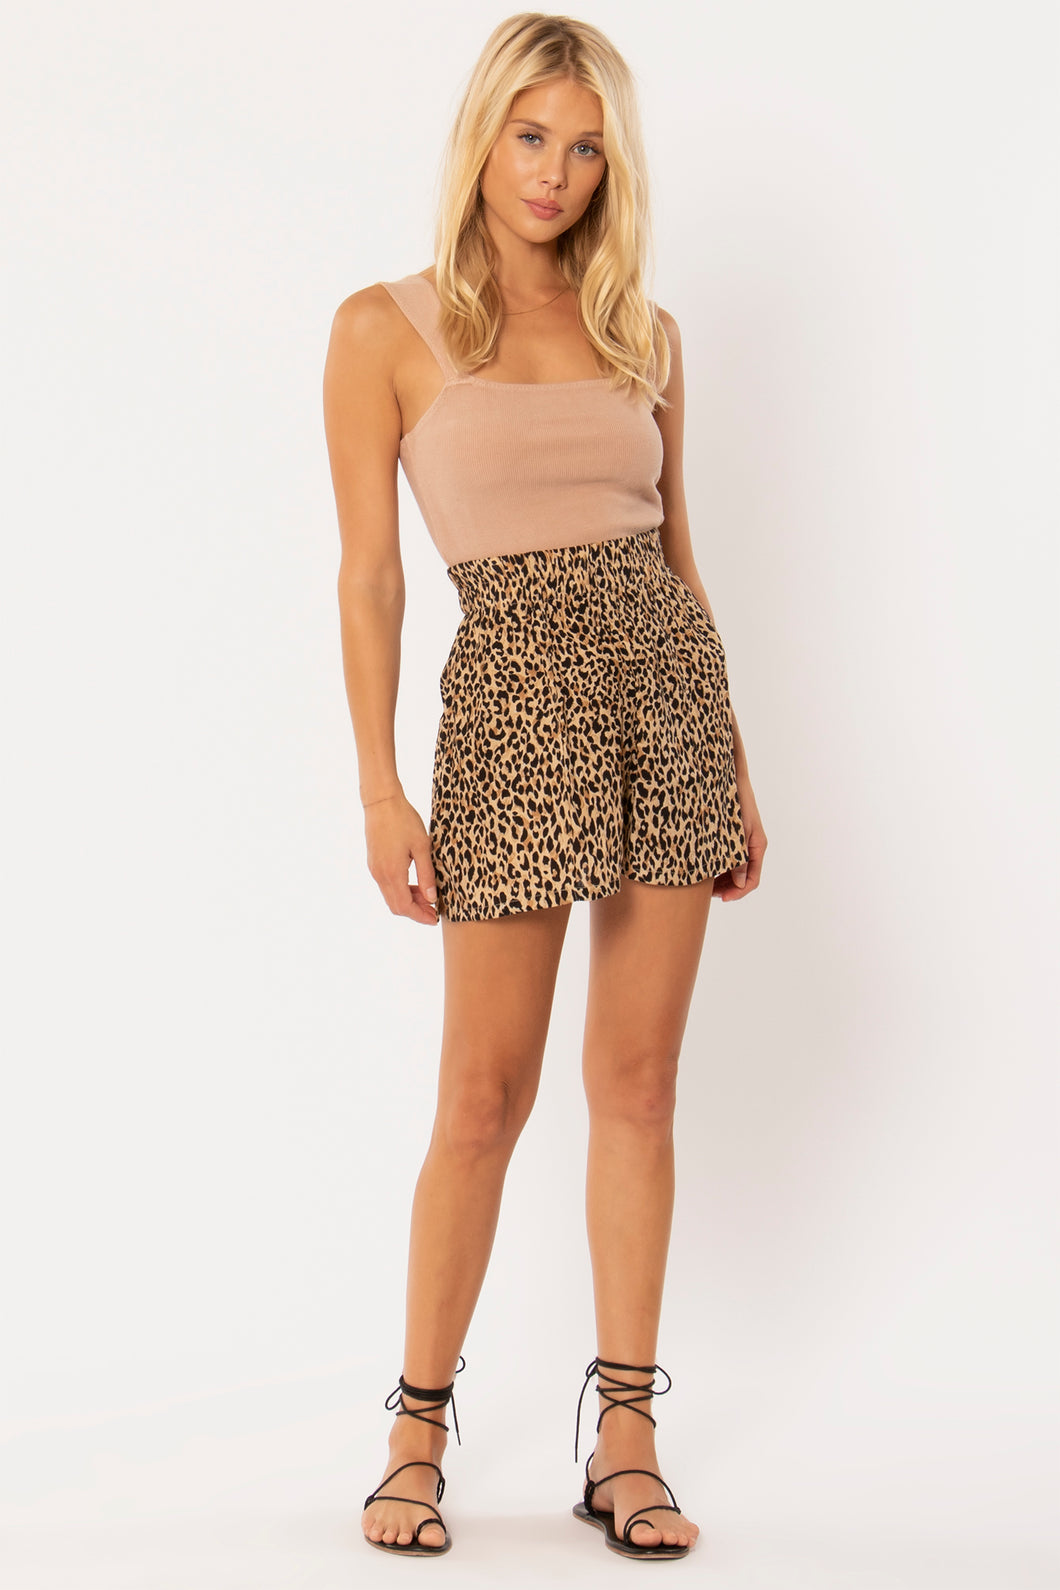 Tiger Queen Shorts